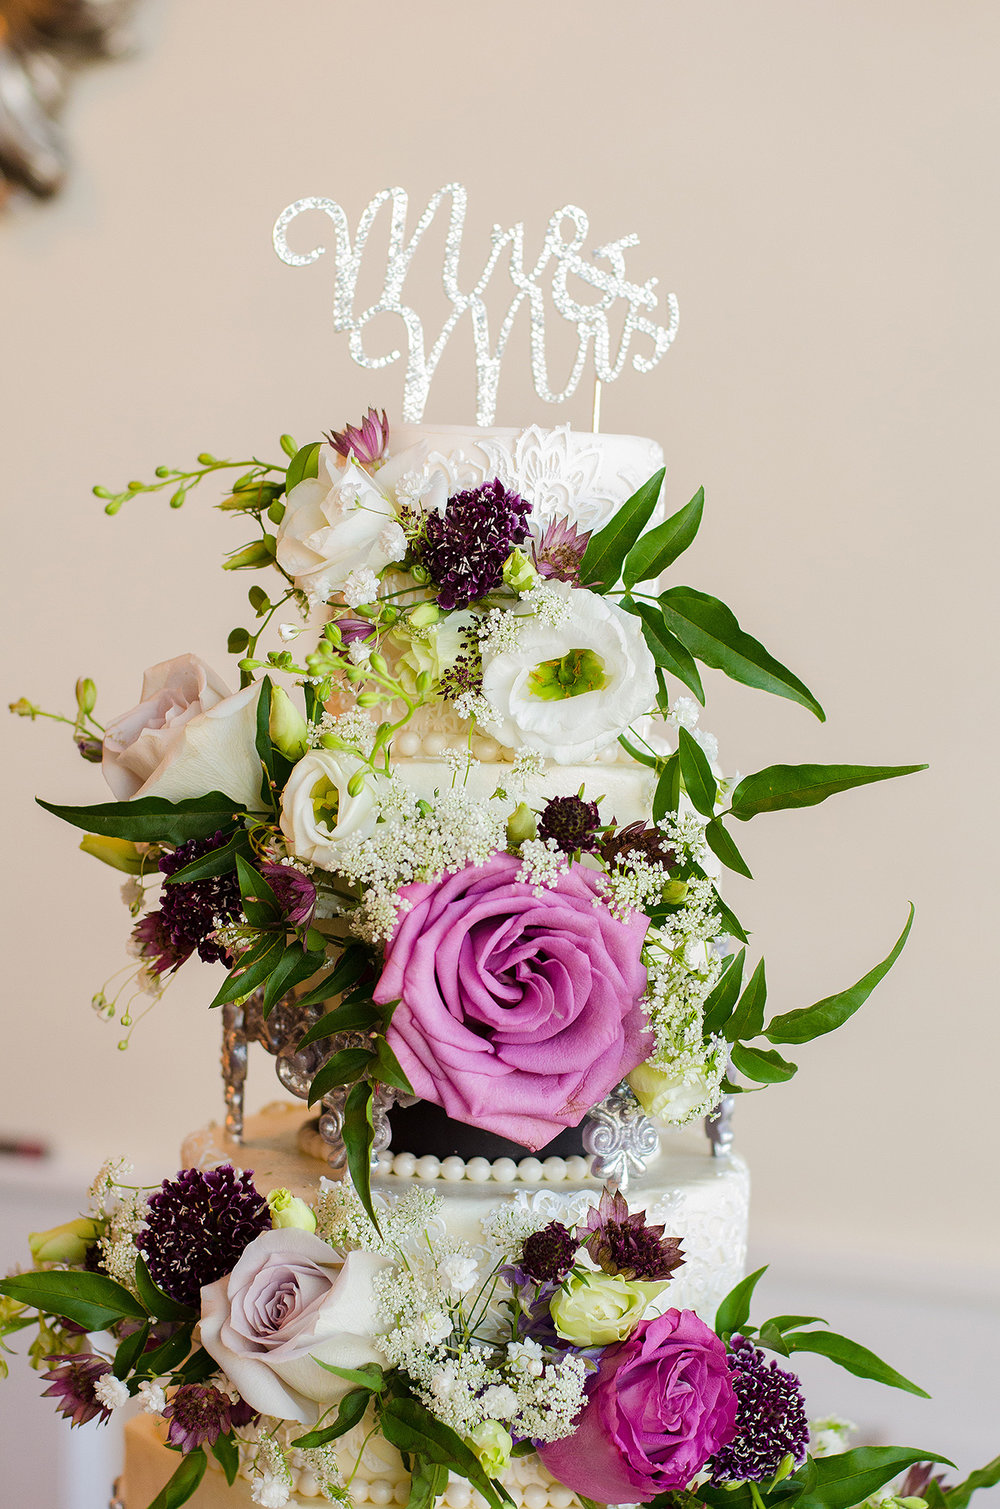 S WEET OLIVE WEDDINGS | A CAKE FOR YOU CINCINNATI | CINCINNATI CUSTOM CAKES | DAYTON WEDDING PLANNING